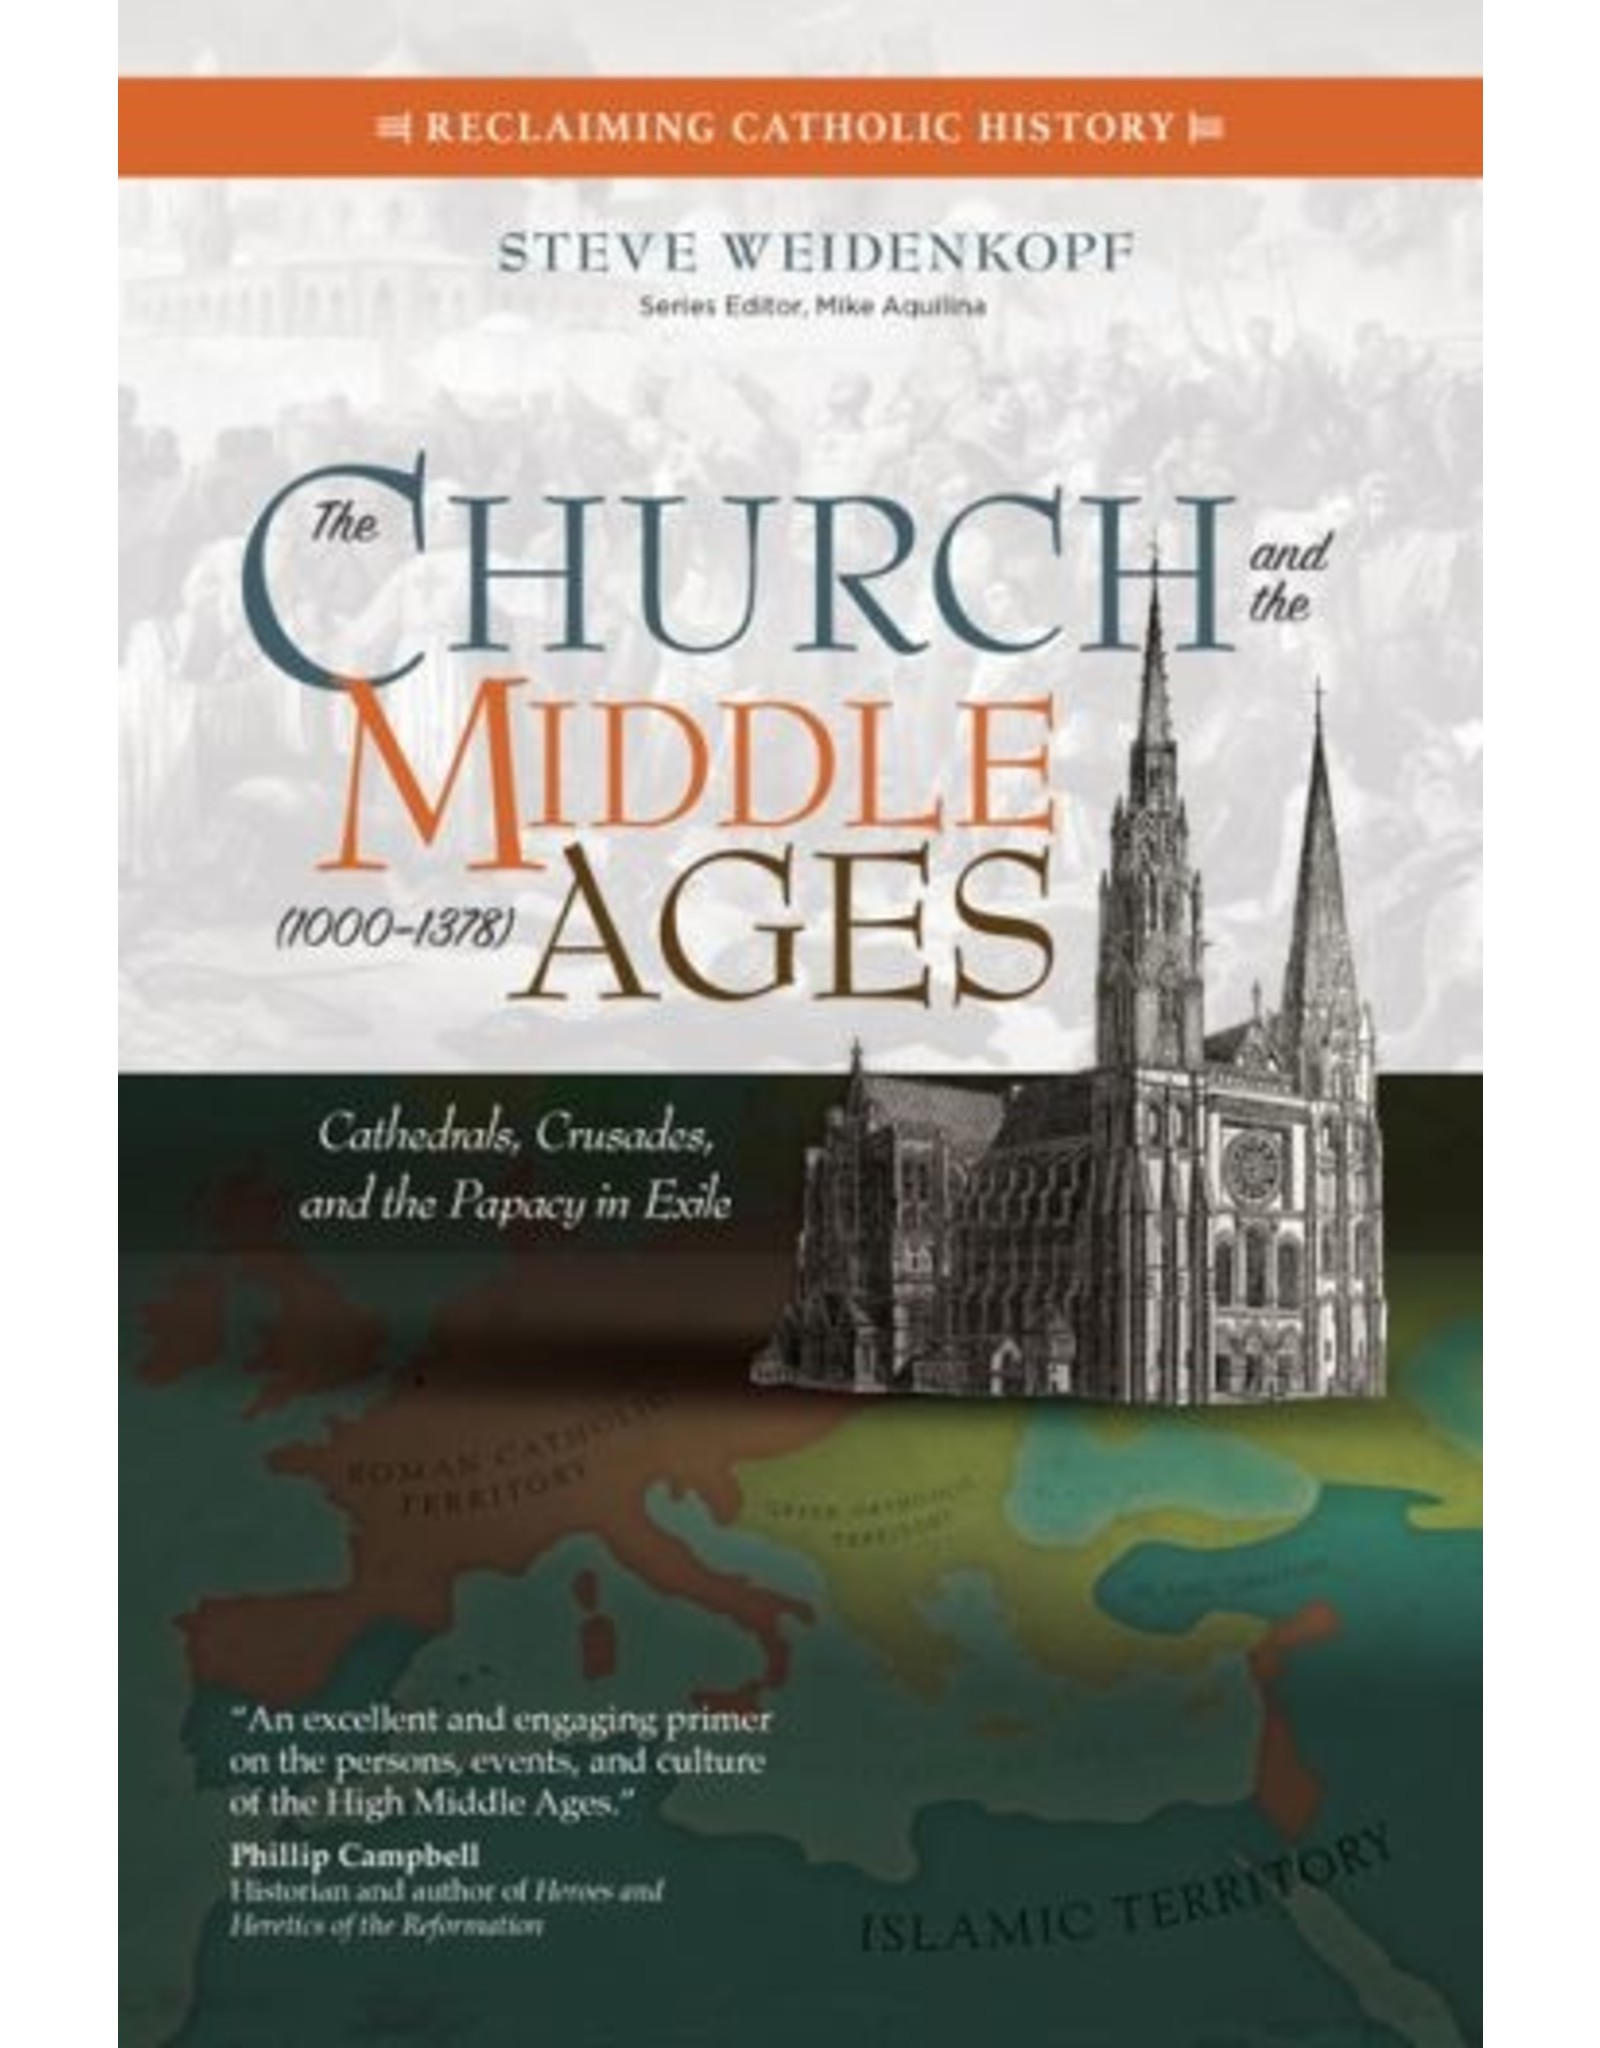 CHURCH & MIDDLE AGES